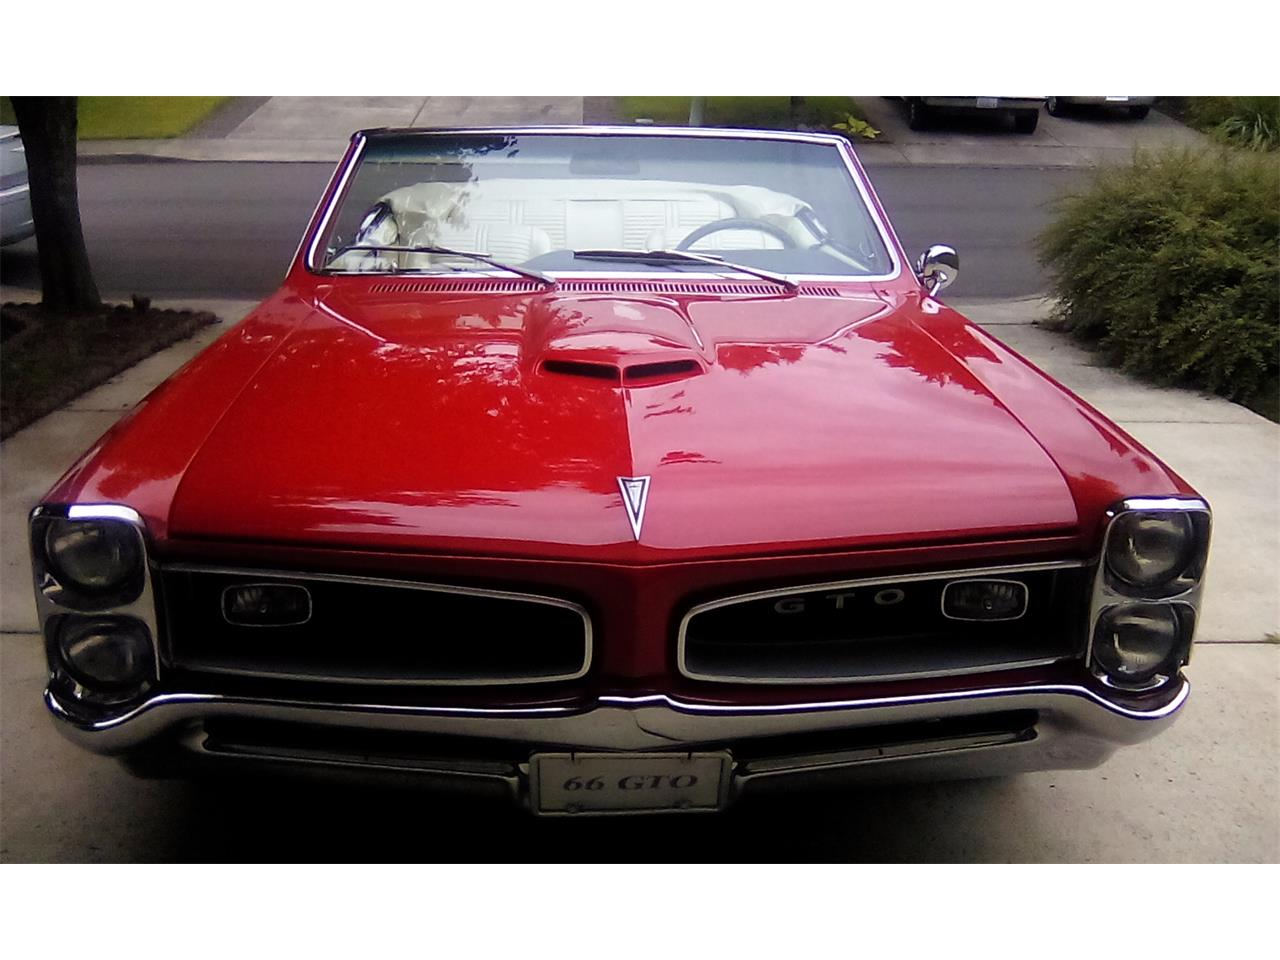 Large Picture of '66 Pontiac GTO located in Washington - $69,000.00 - OHAD